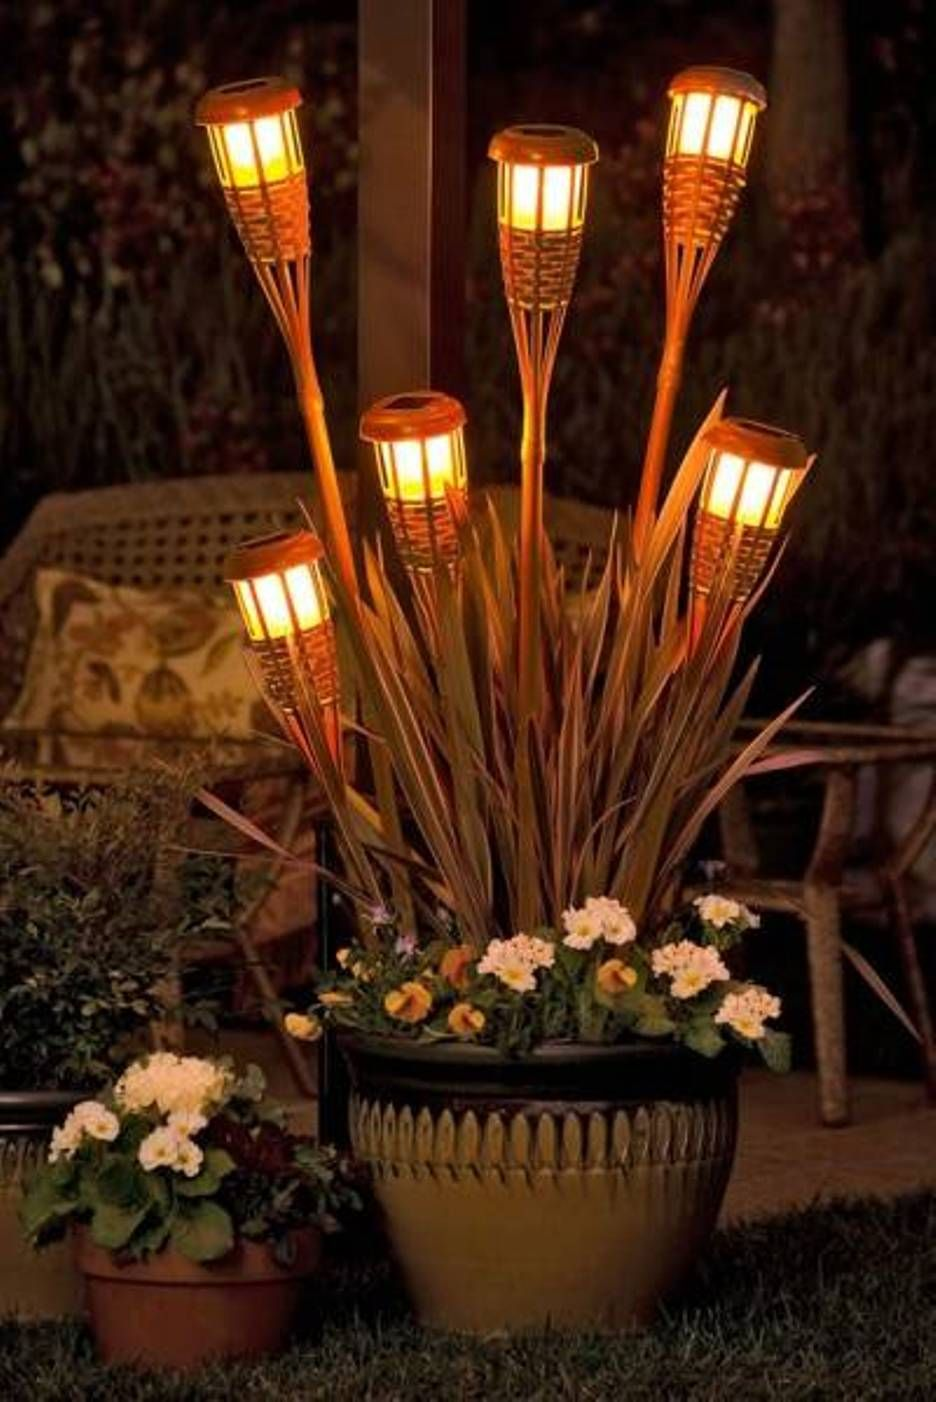 Outdoor Party Lighting Ideas | ...  Exterior Small Decking Ideas Home Swimming & Outdoor Party Lighting Ideas | ...  Exterior Small Decking Ideas ... azcodes.com